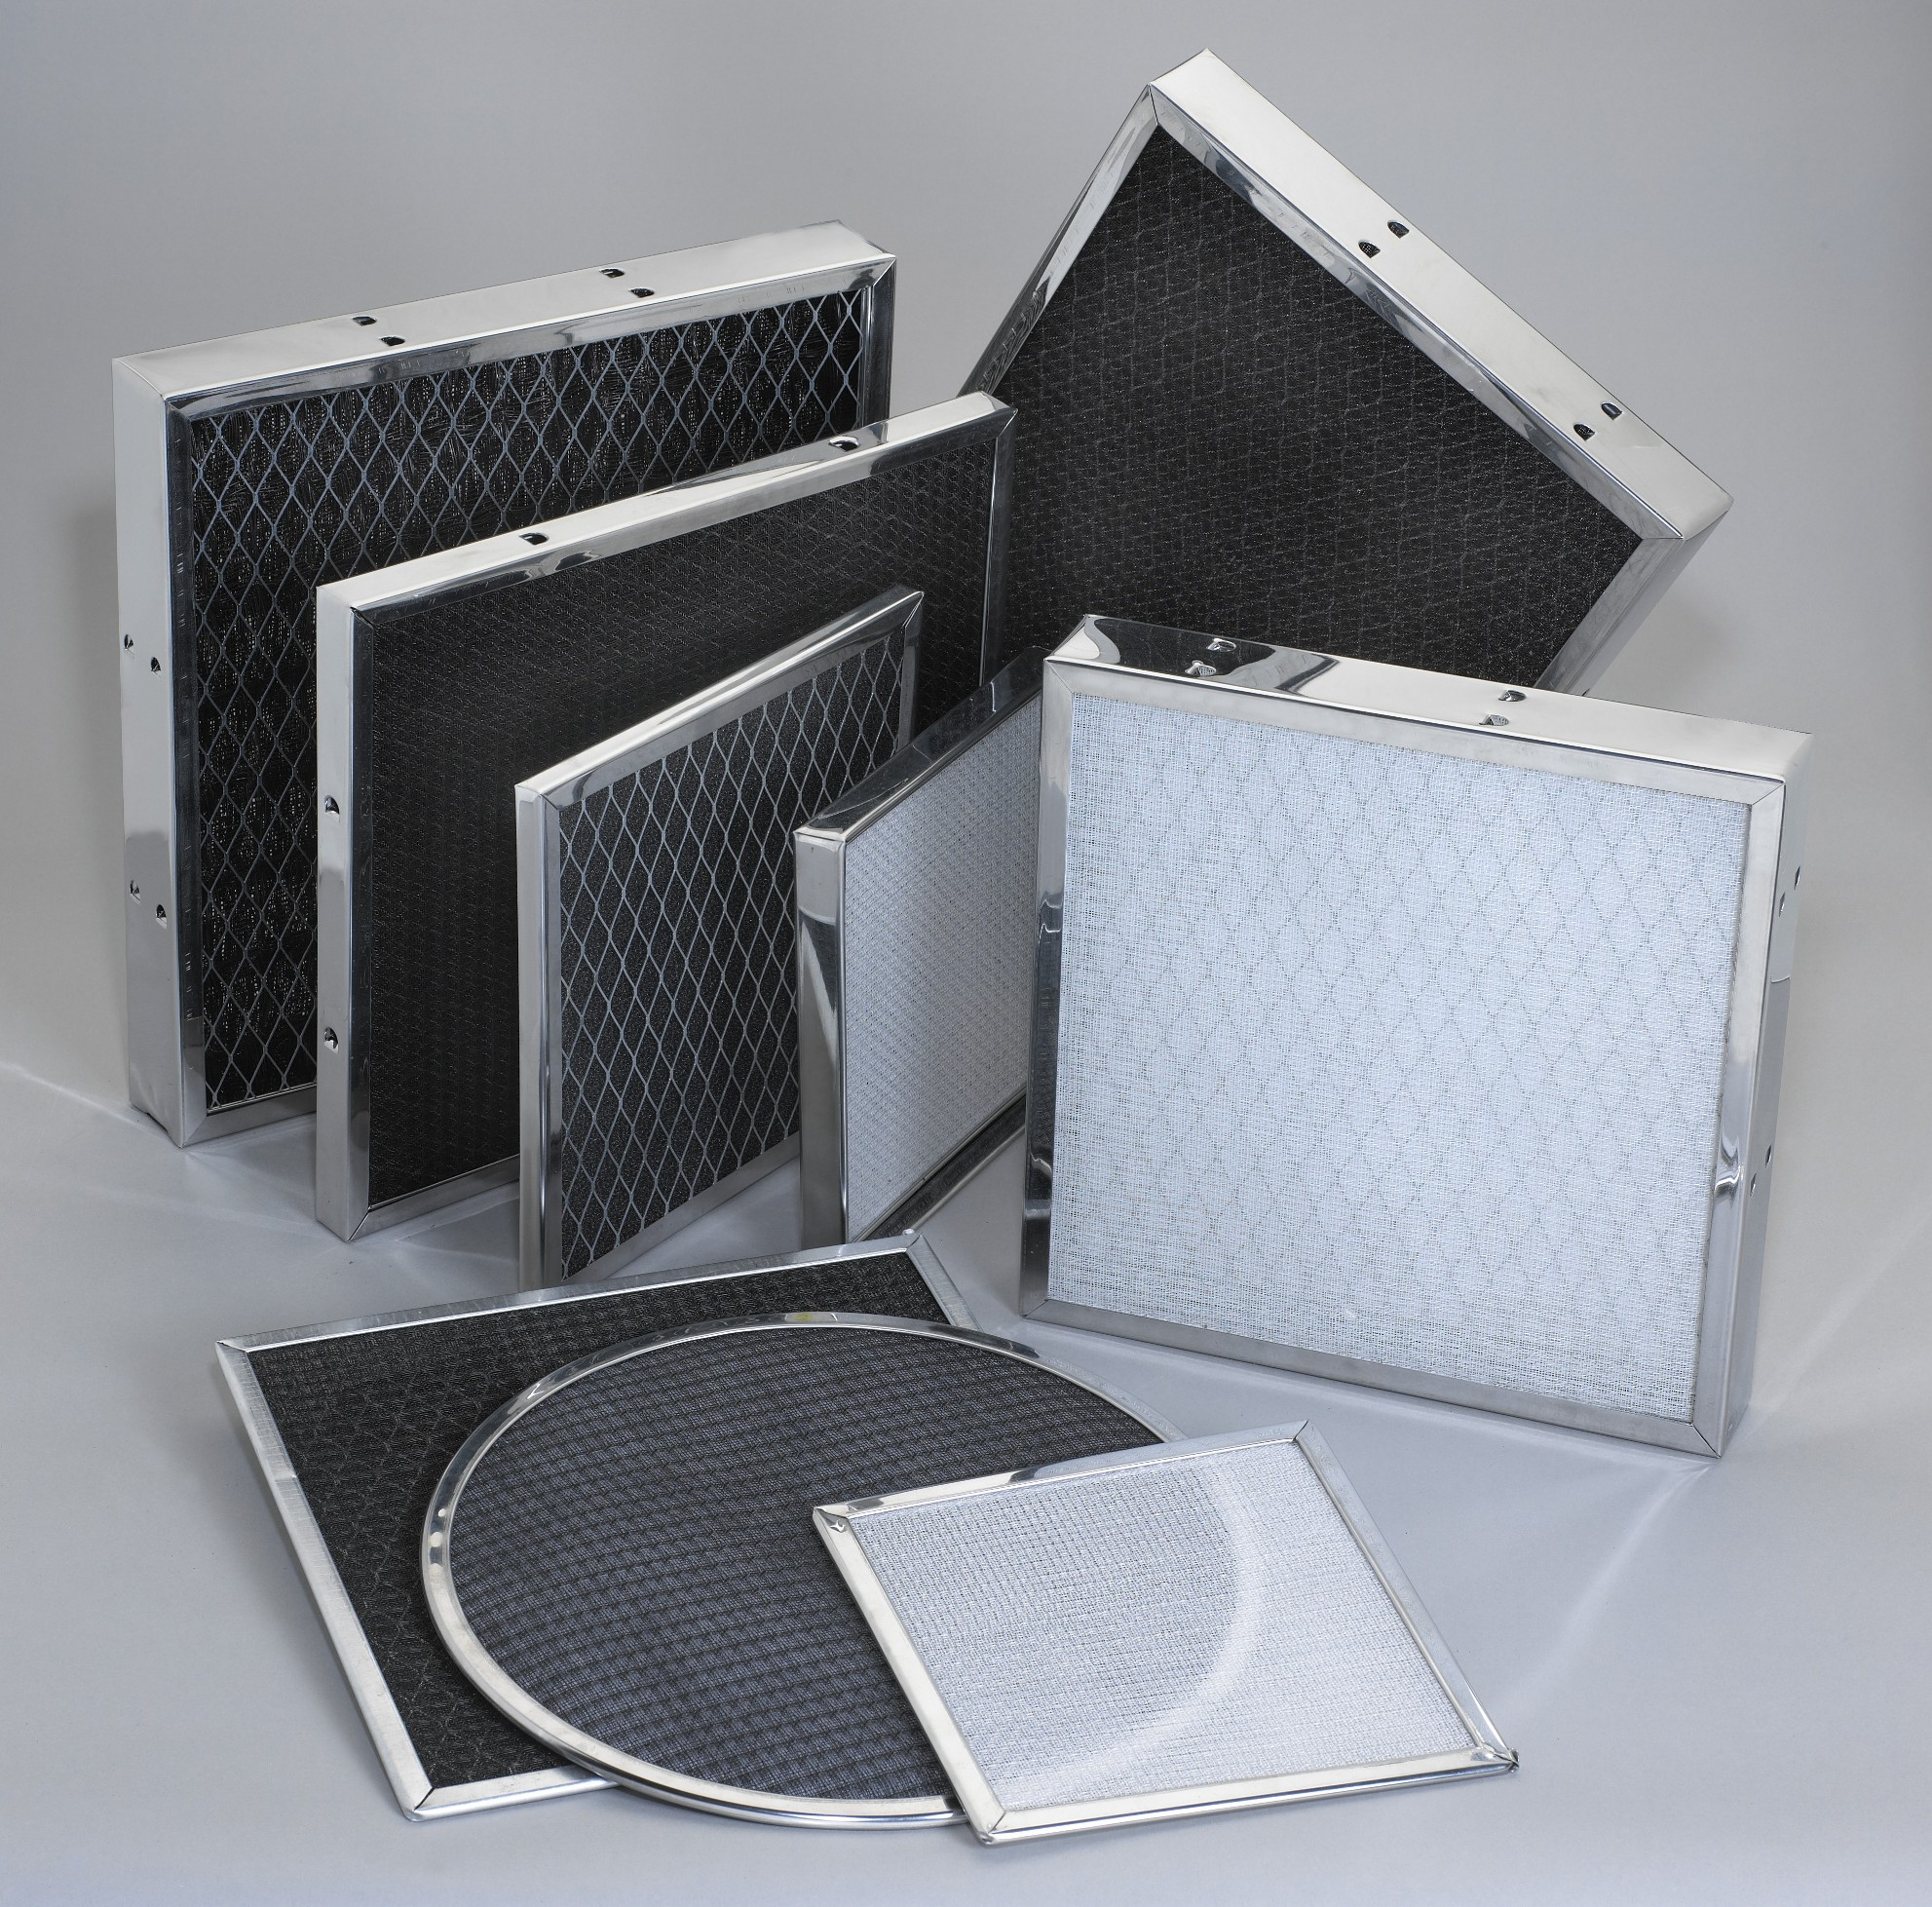 5 Benefits Of A Permatron Washable Filter Call Permatron